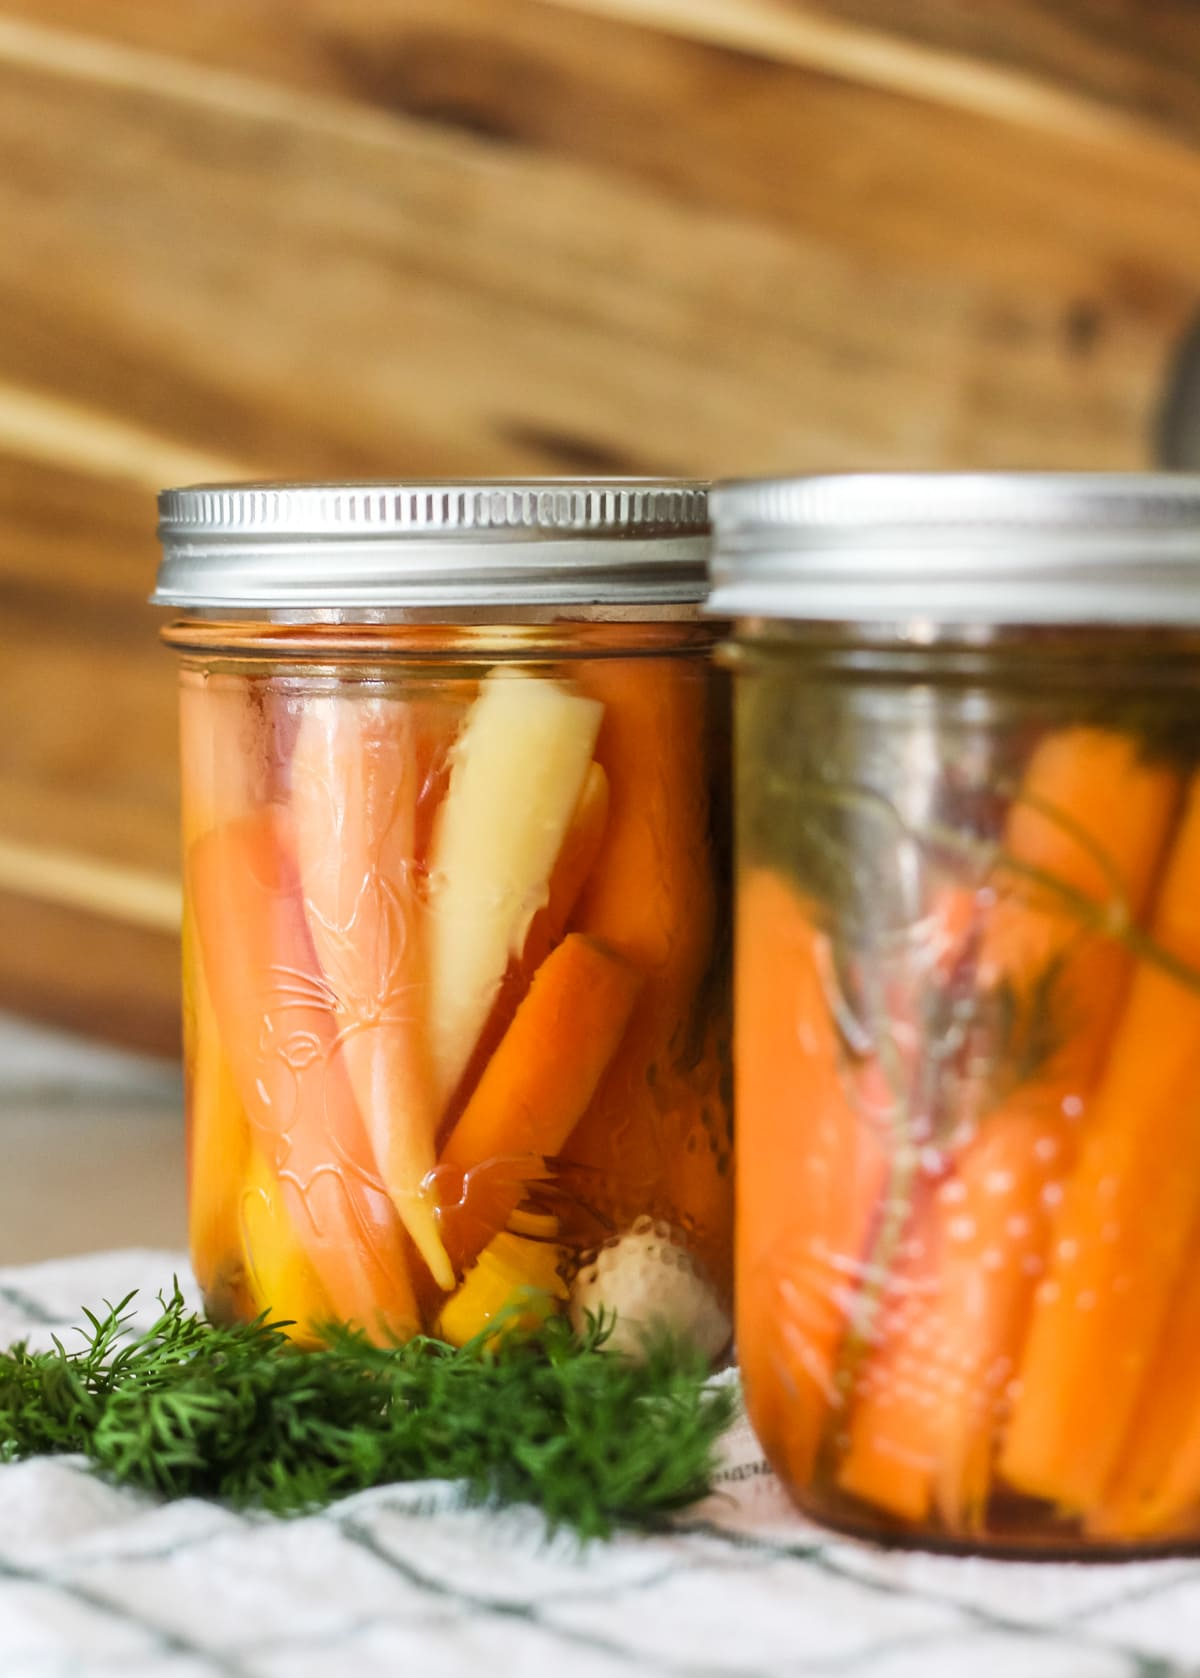 a front view of two jars of pickled carrots. the jars are sitting on a green and white checker tea towel, and are sitting next to a small bunch of fresh dill